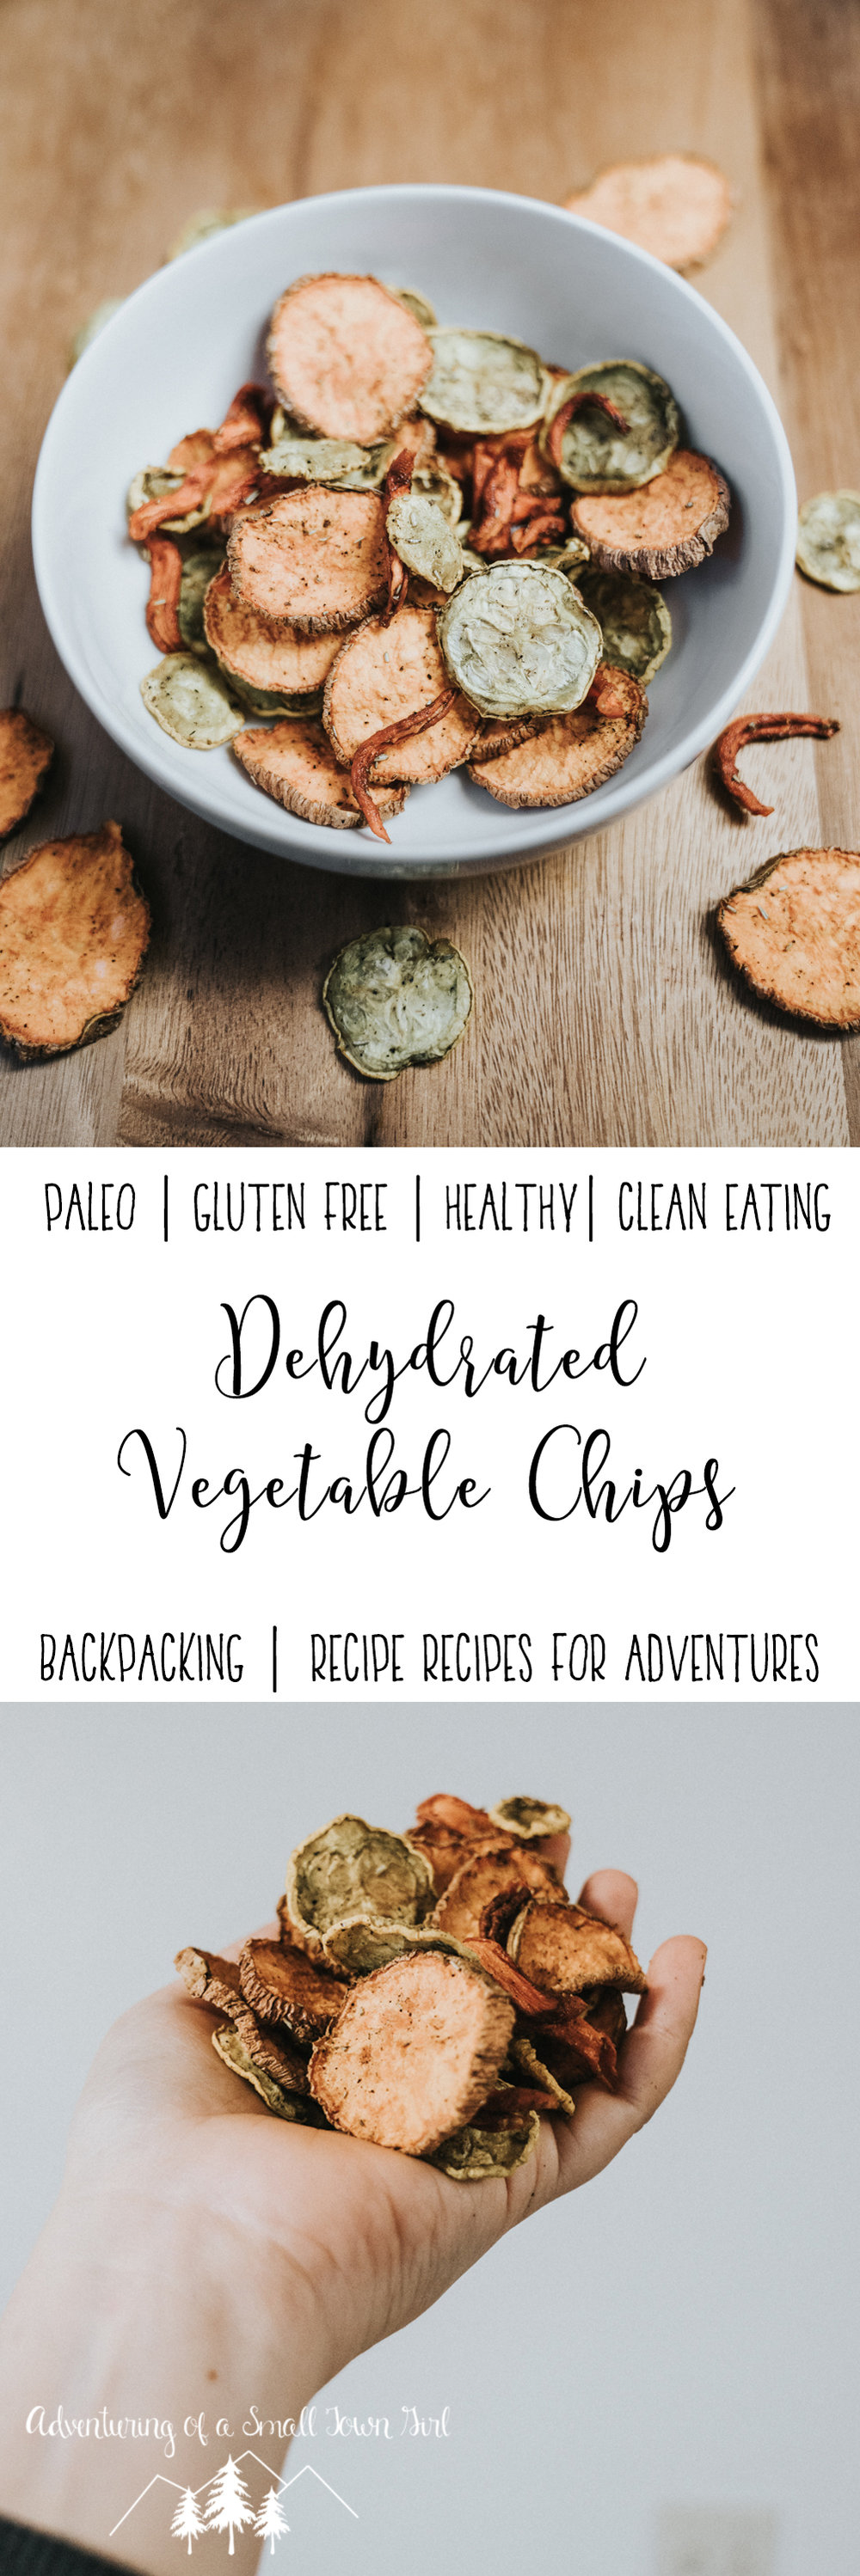 Dehydrated Vegetable Chips By Adventuring of a Small Town Girl (ASTG) - Backpacking Recipes - Recipes for Adventures - Dehydrated Recipes - Paleo Backpacking Recipes